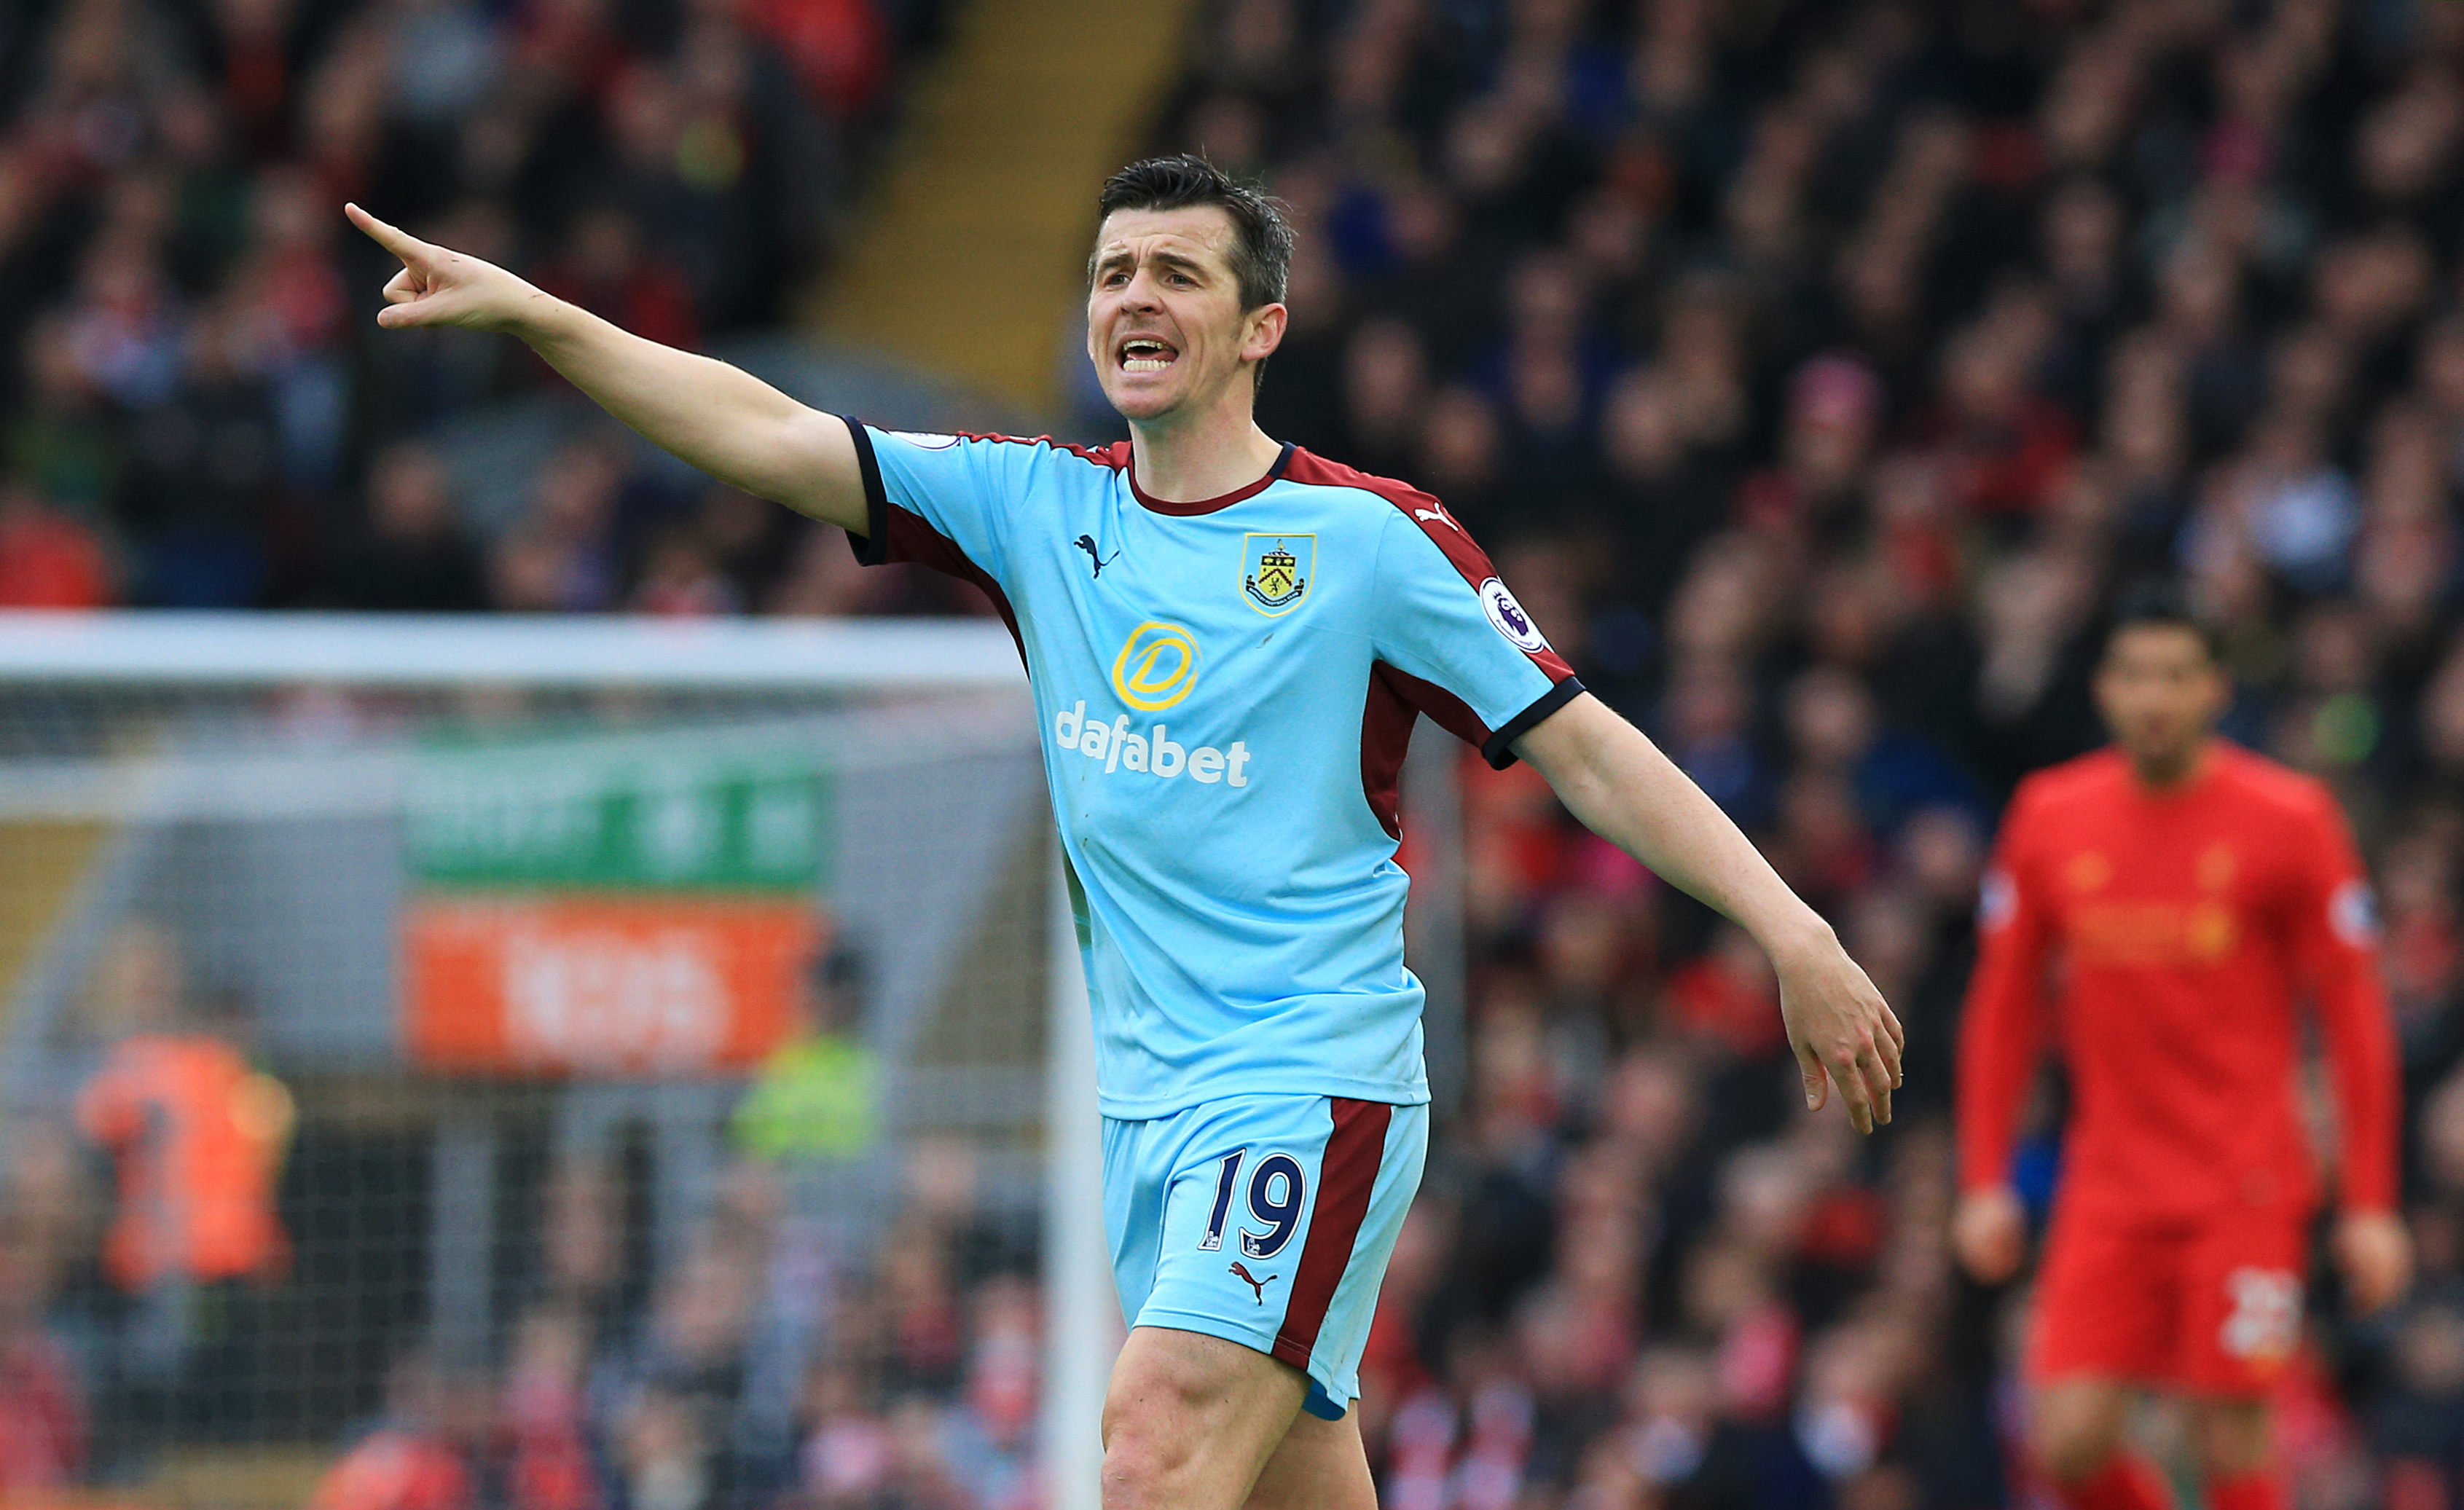 Joey Barton during the Premier League match at Anfield, Liverpool (PA)